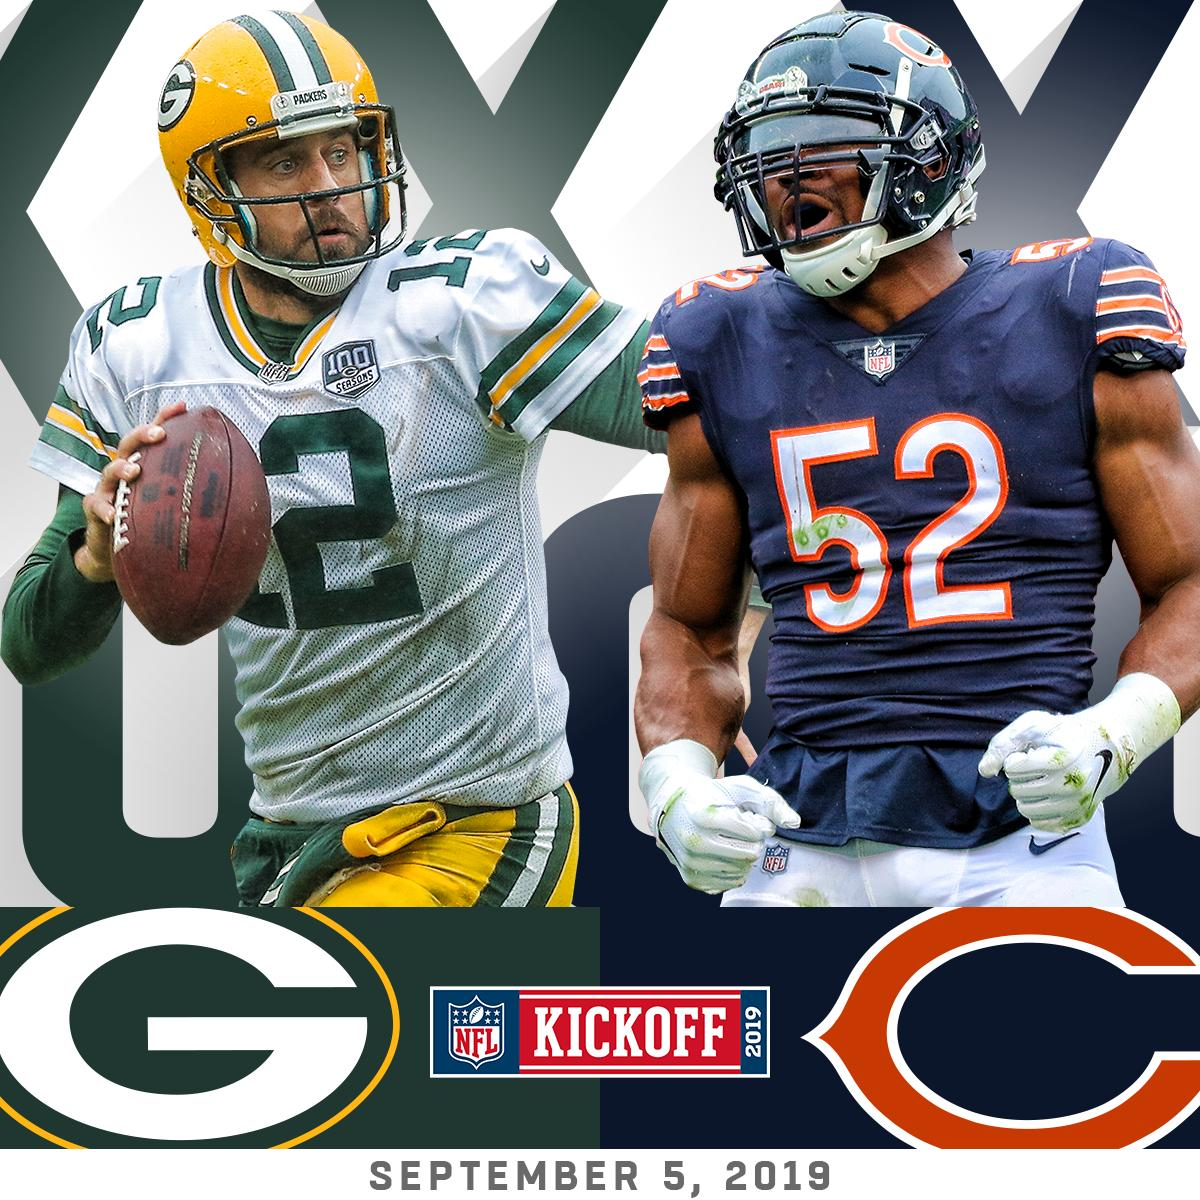 The NFL's 100th season will kick off with @packers at @ChicagoBears on Thursday September 5th, 2019! #NFL100 https://t.co/aGvs22AvNe